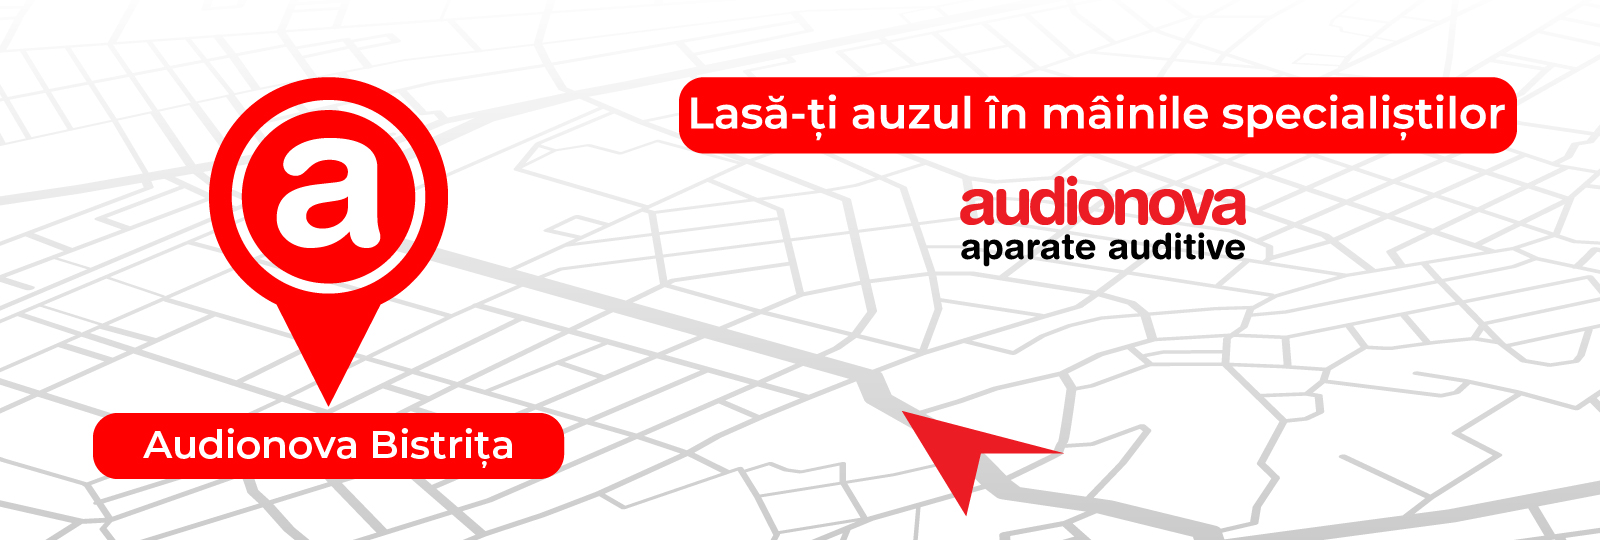 aparate auditive bistrita